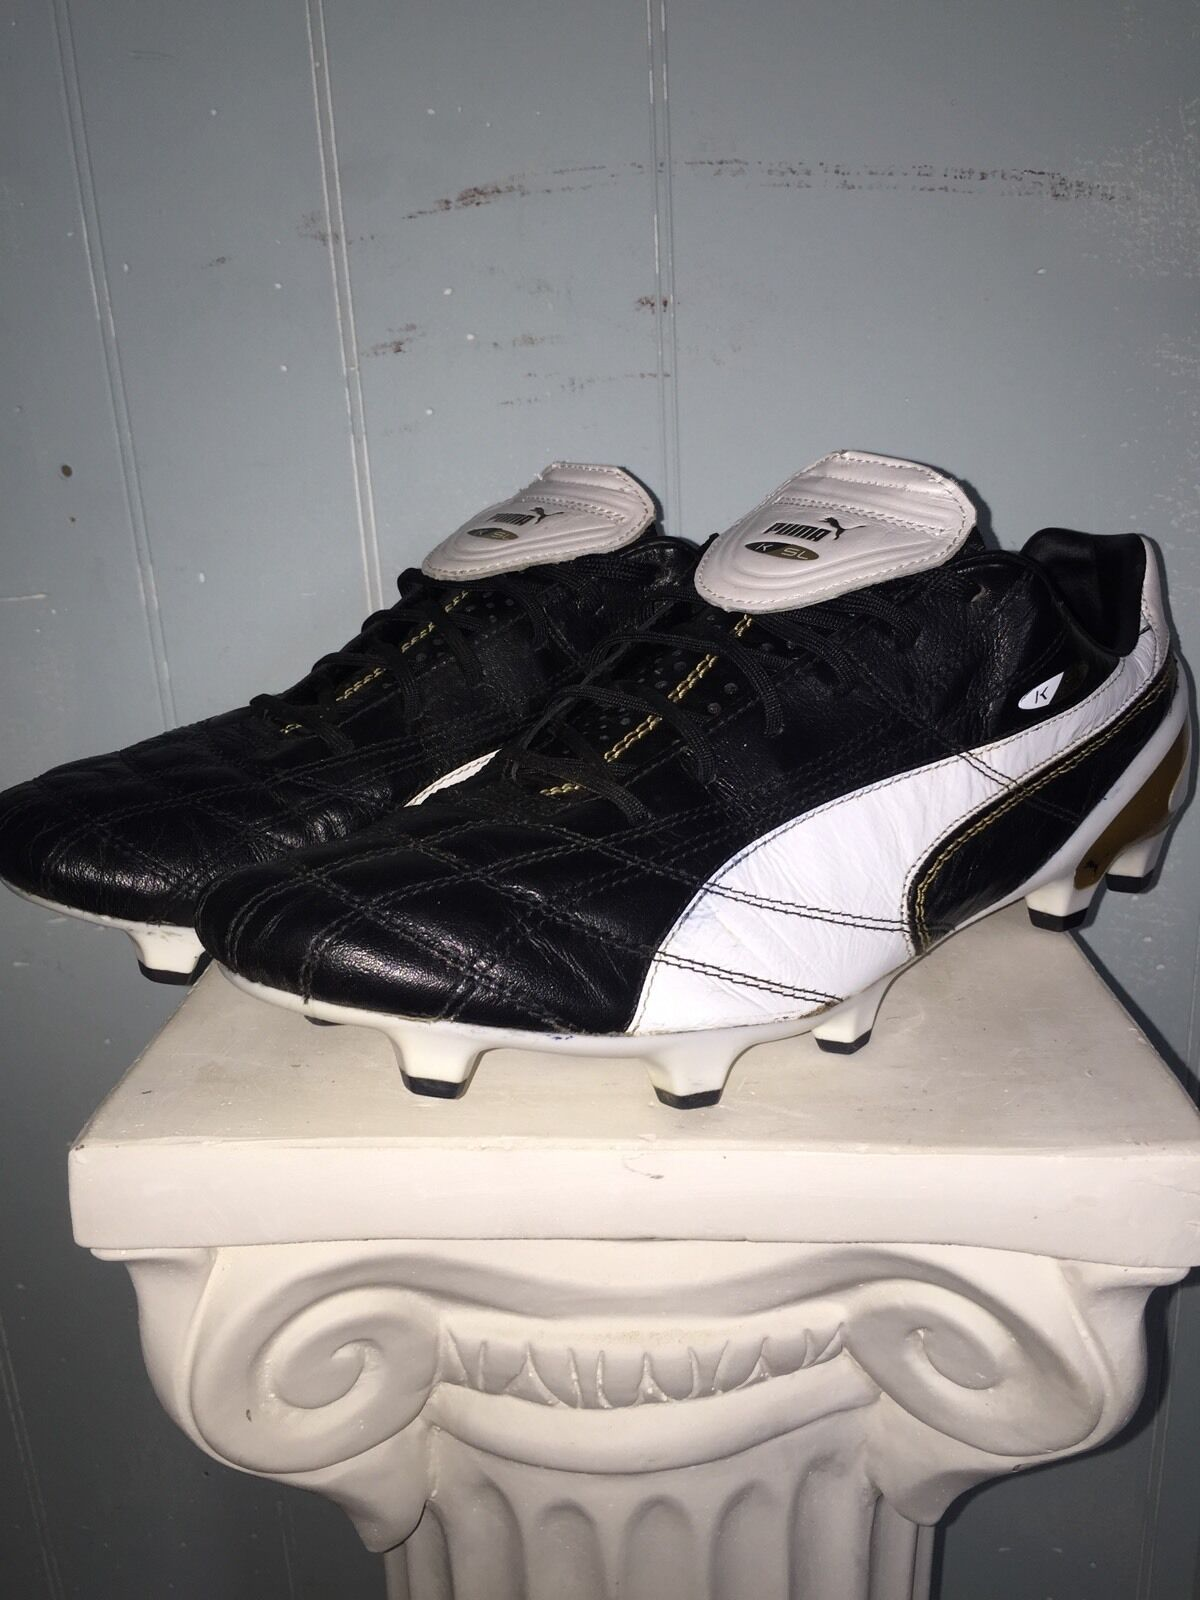 Puma king SL Limited 2001 Pairs Worldwide